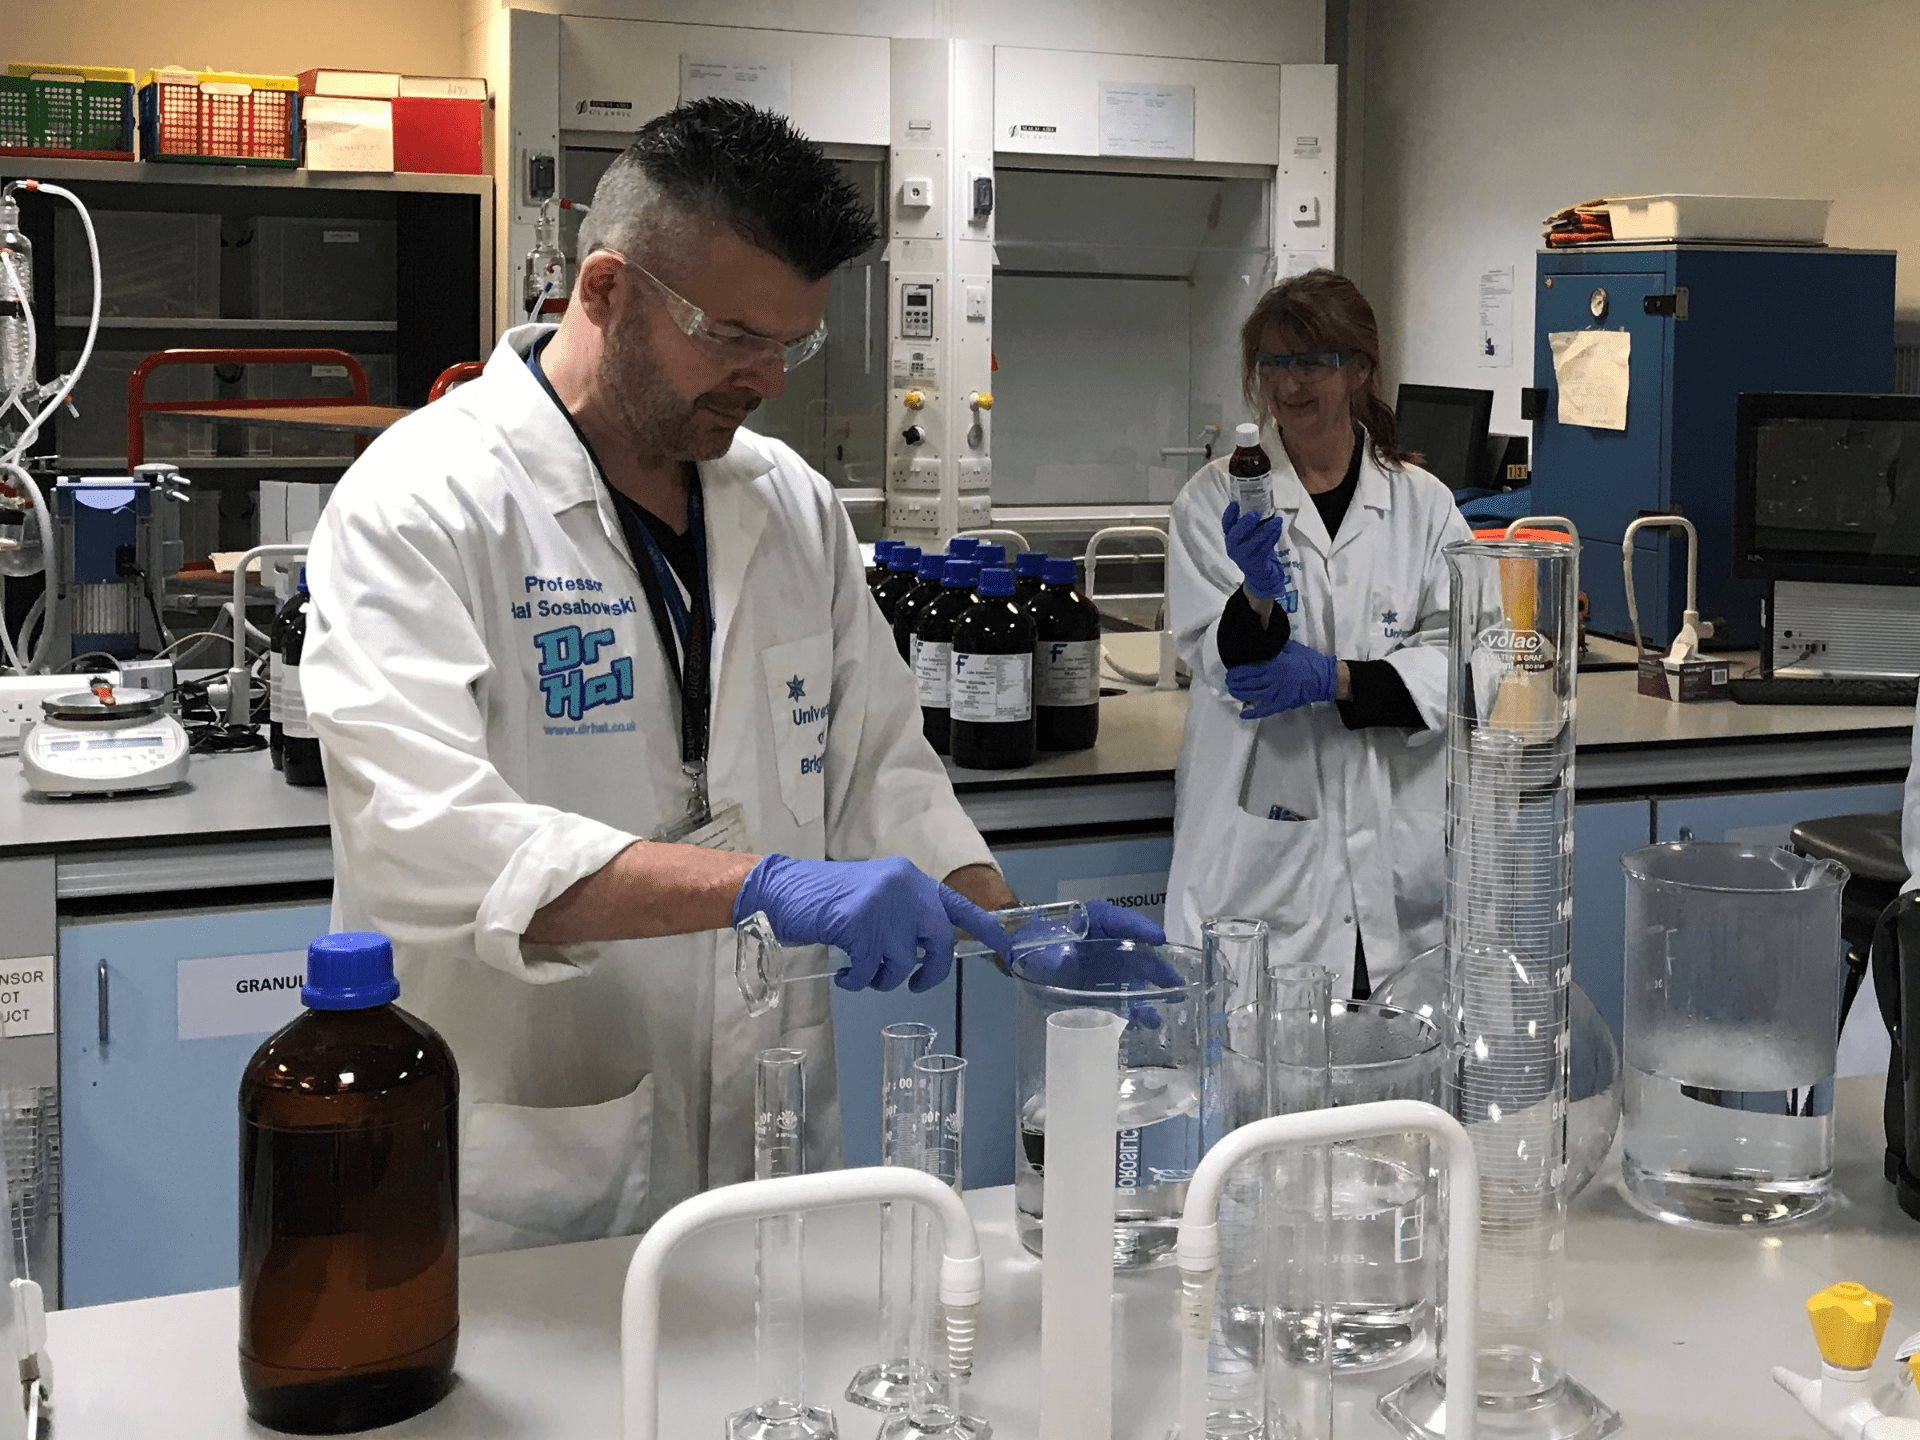 Professor Sosabowski and Dr Angela MacAdam in the lab